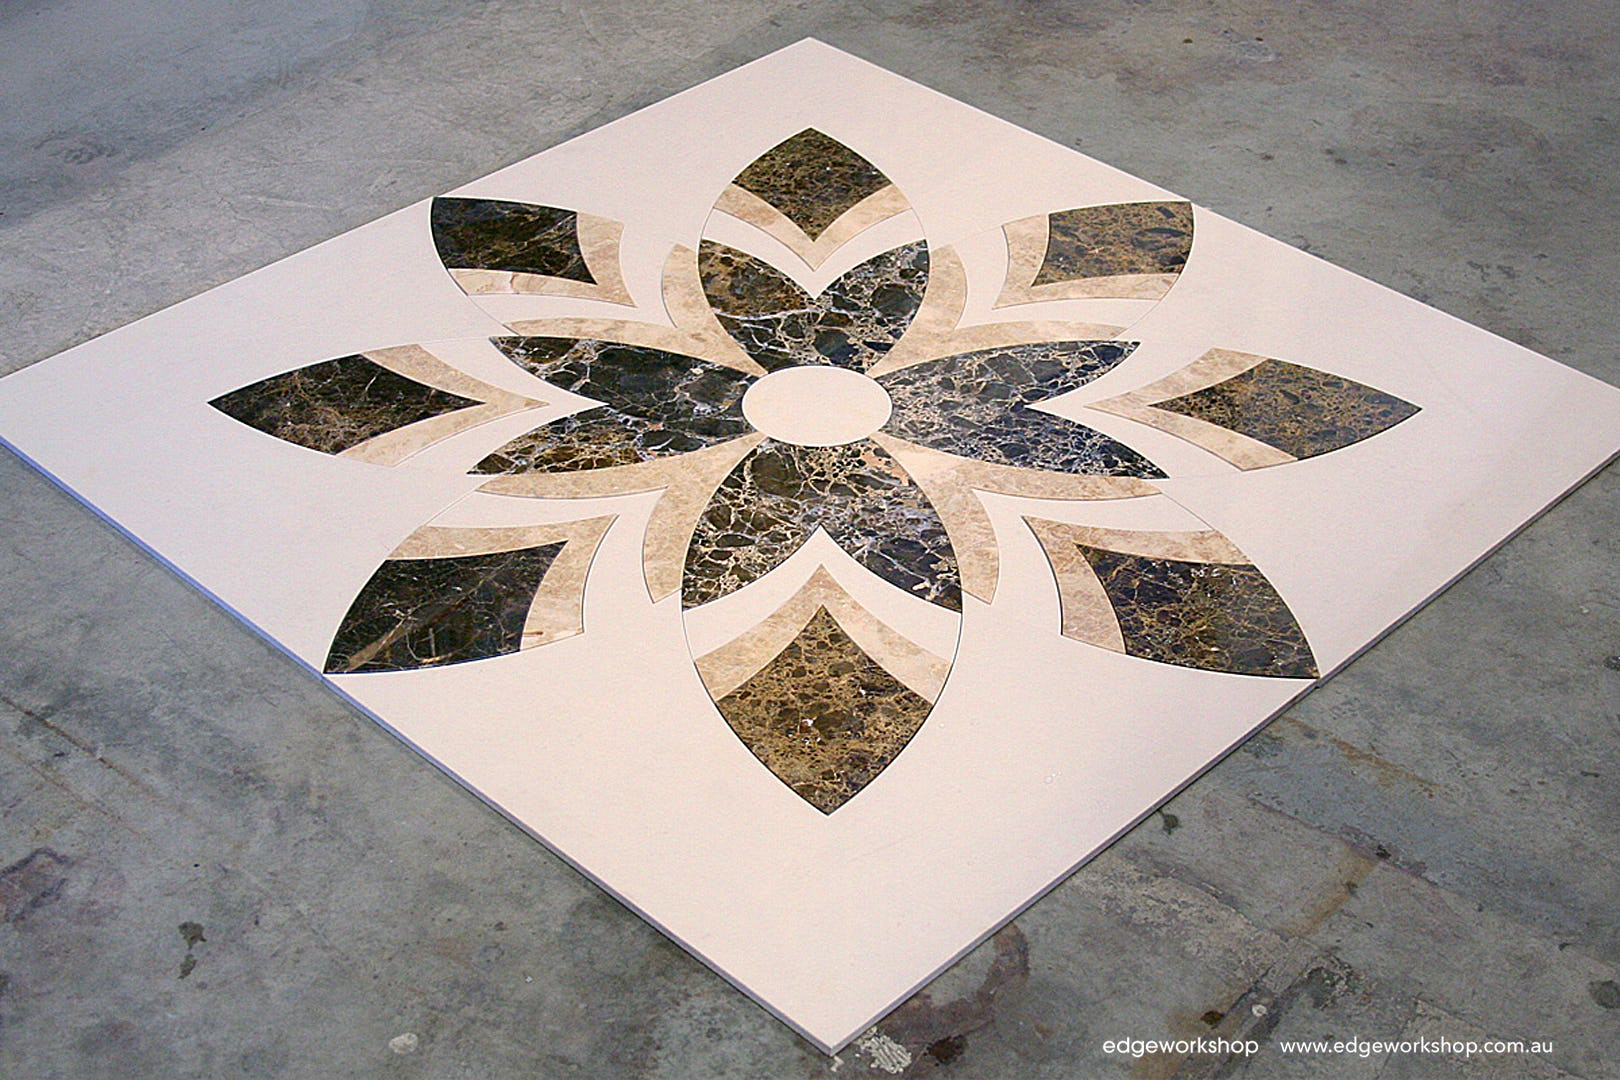 Stone ceramic tile inlays edgeworkshop show details dailygadgetfo Images